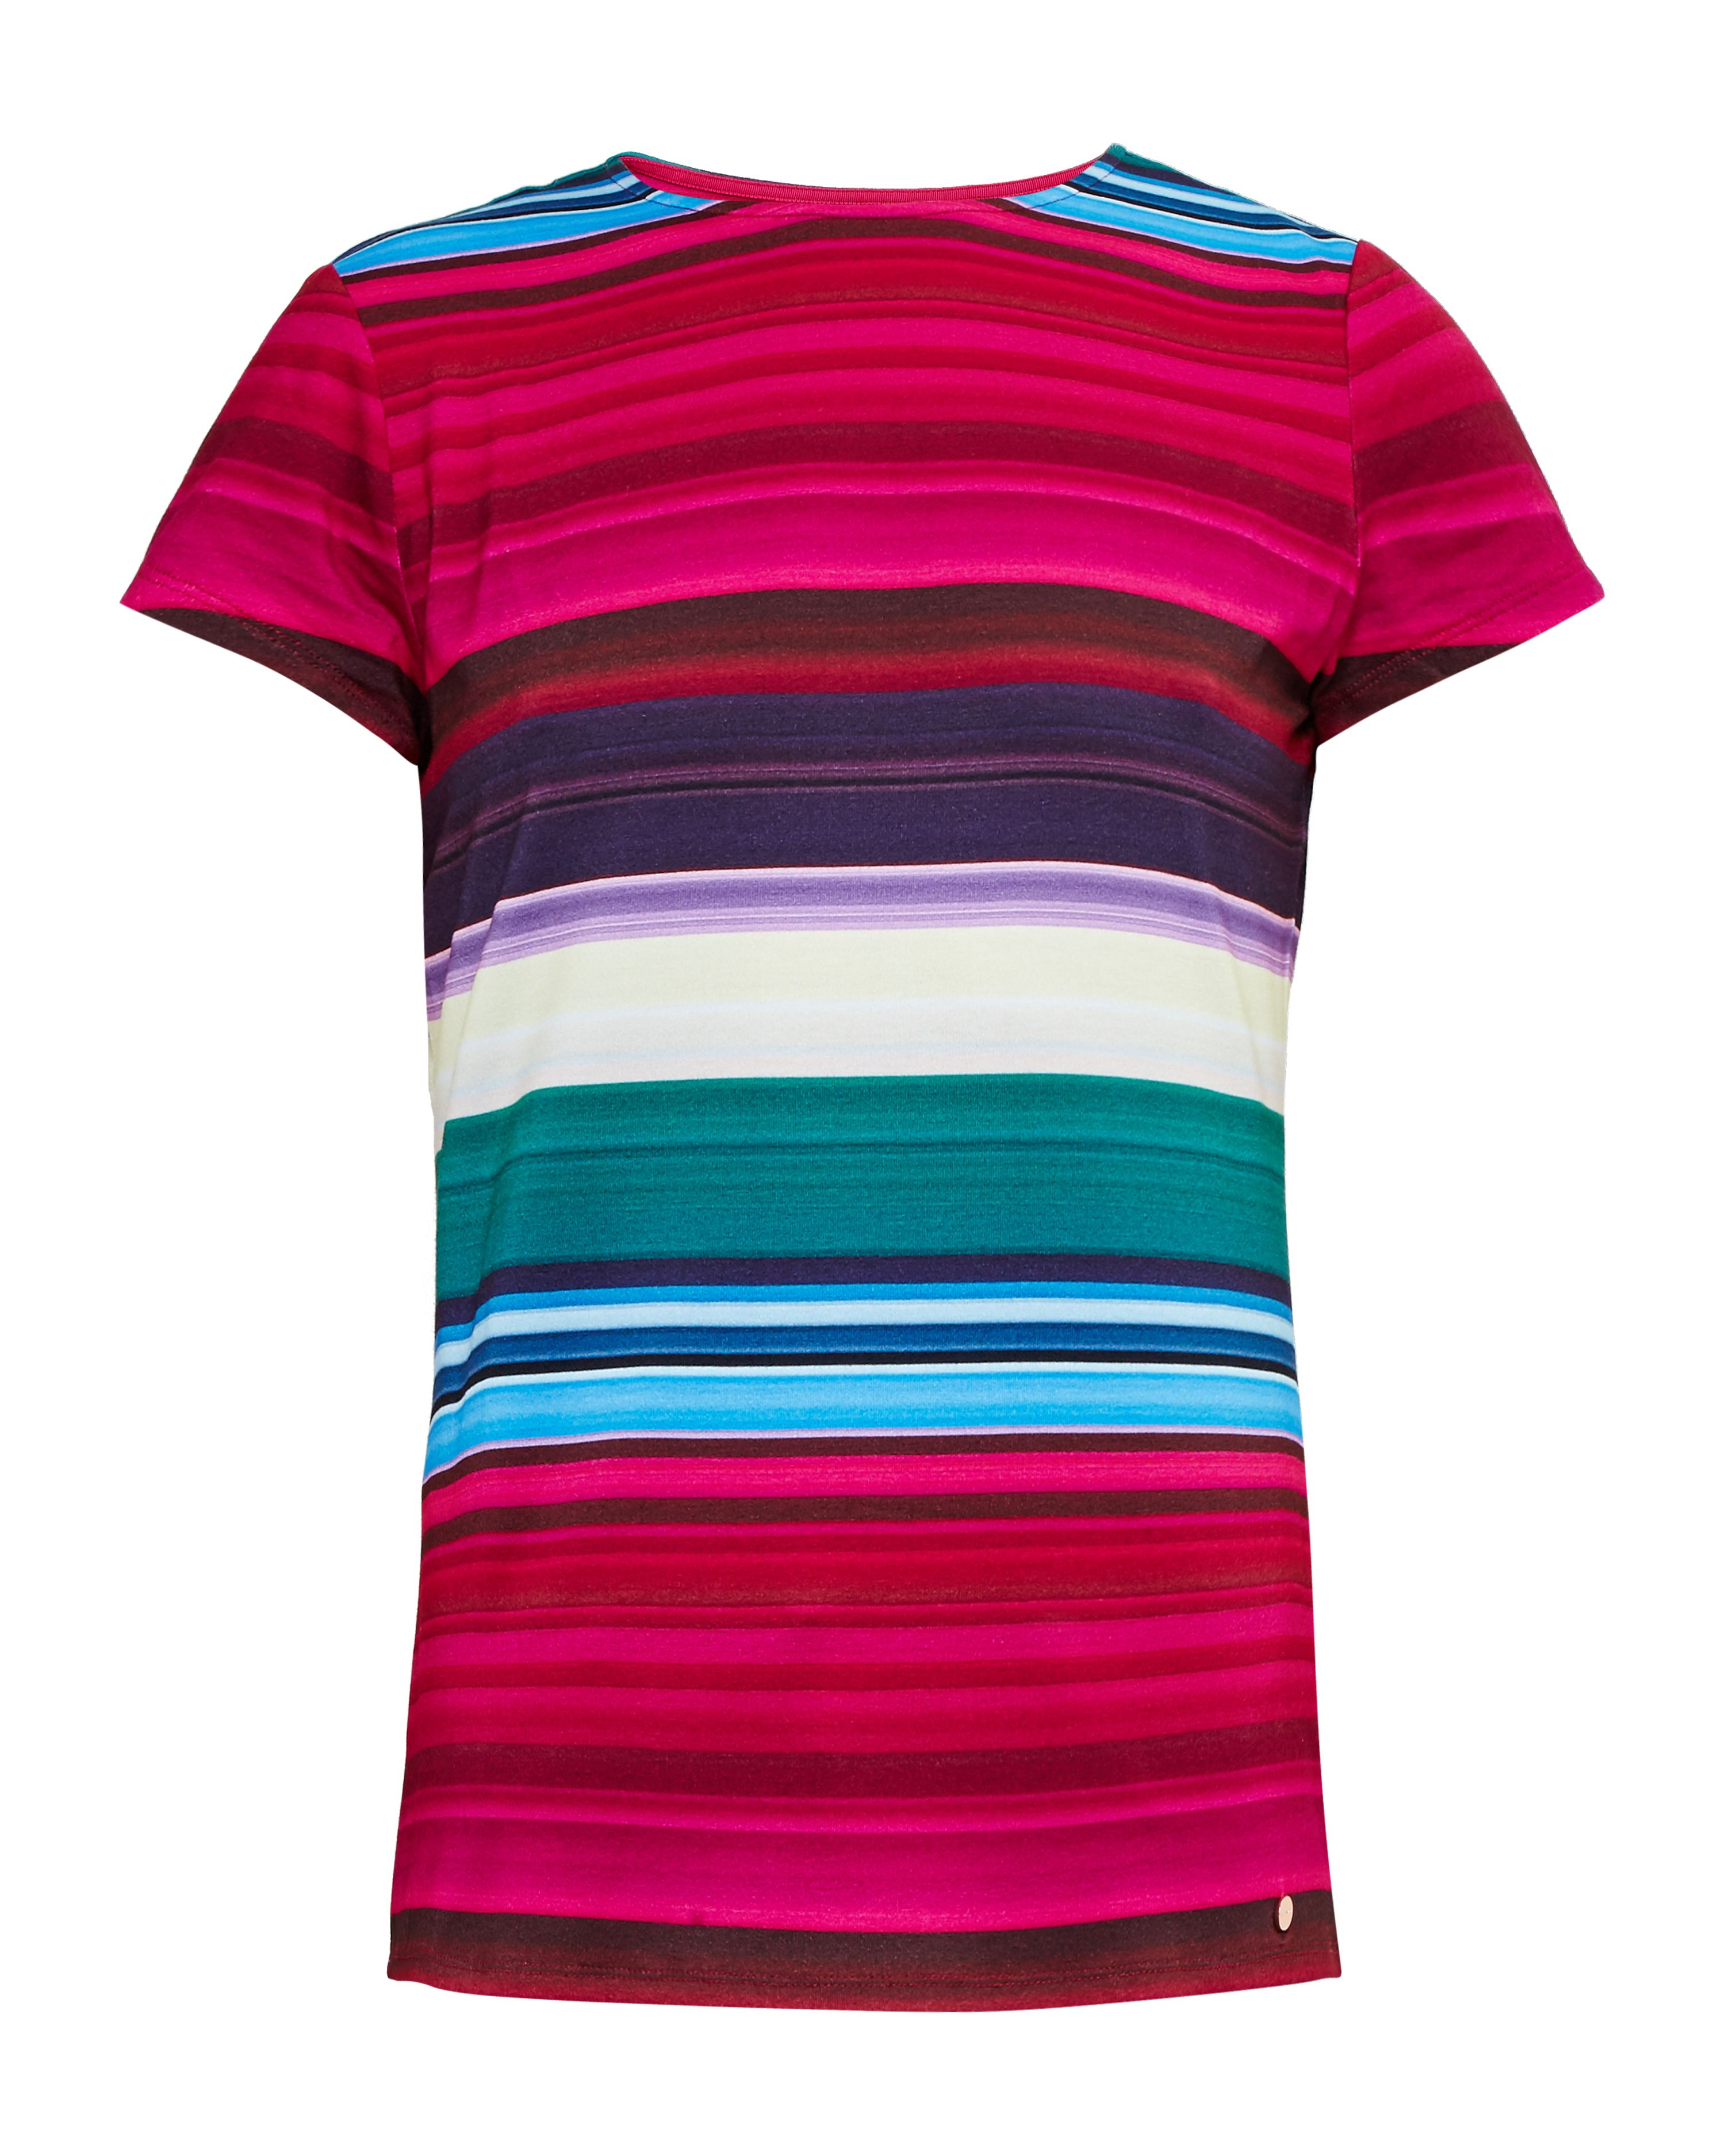 Ted Baker Itrsti Striped fitted Tshirt Pink